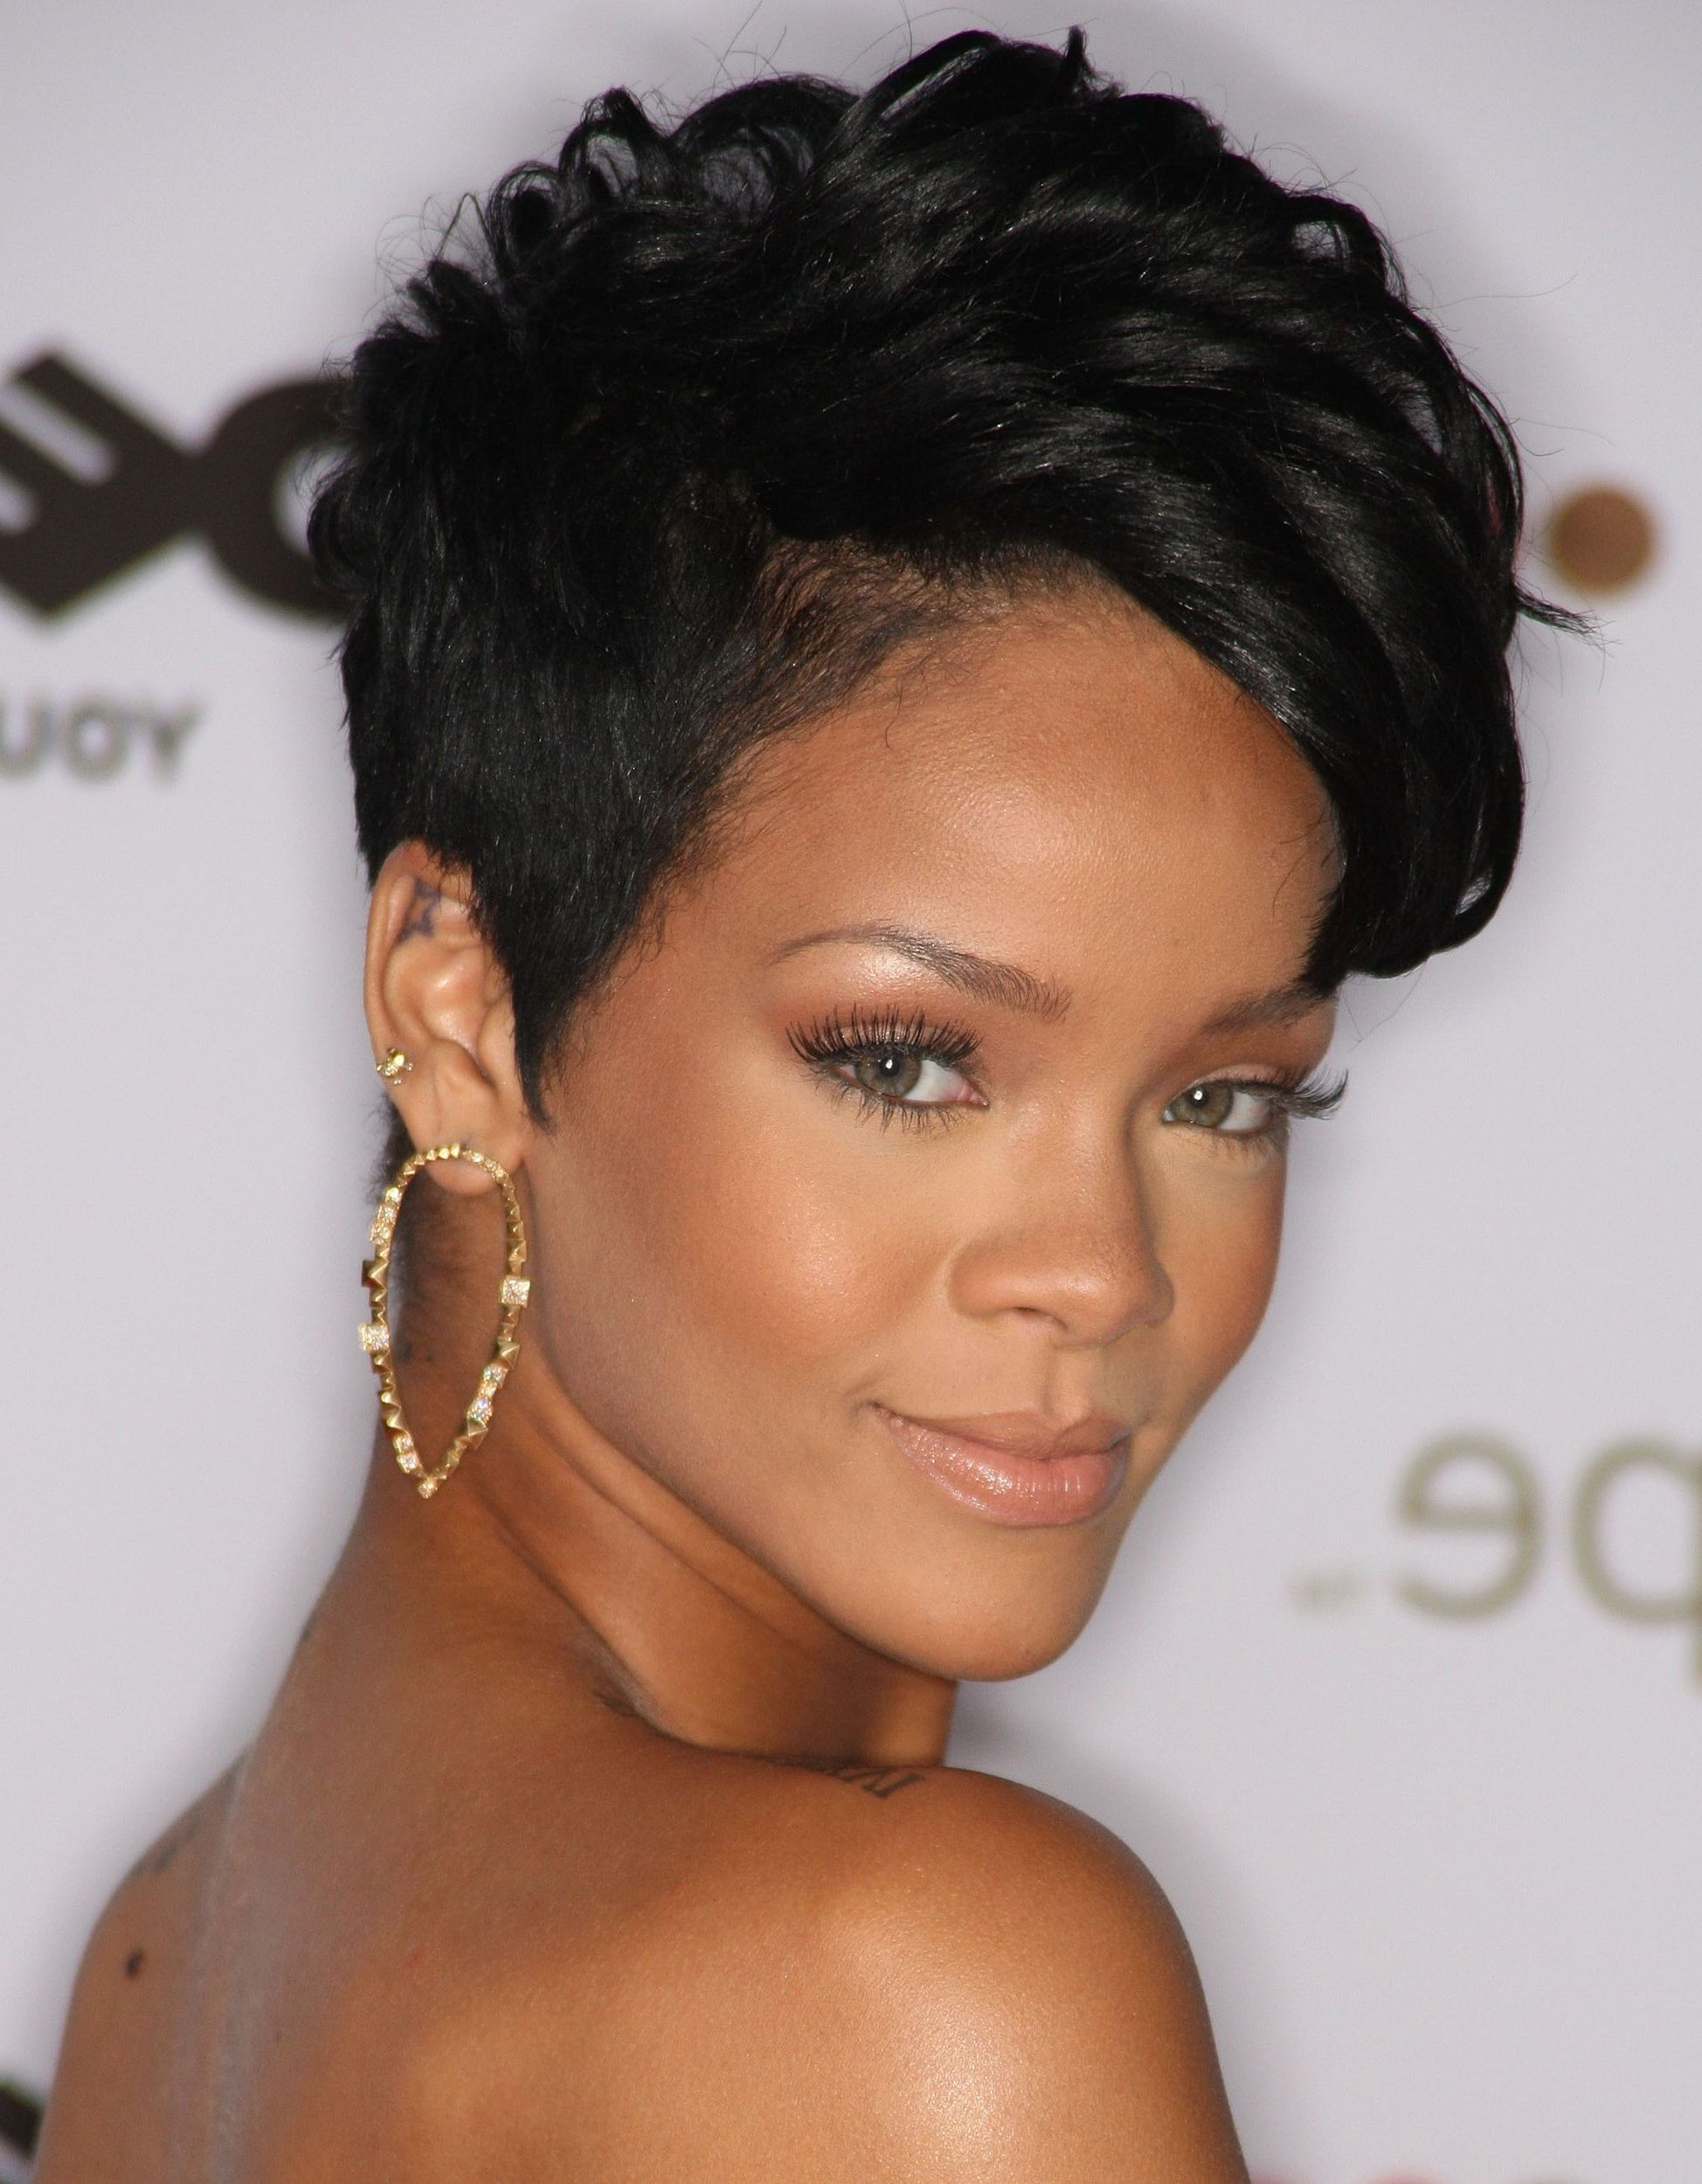 photos cute hairstyles for black women with short hair of pc hd pics things iud like